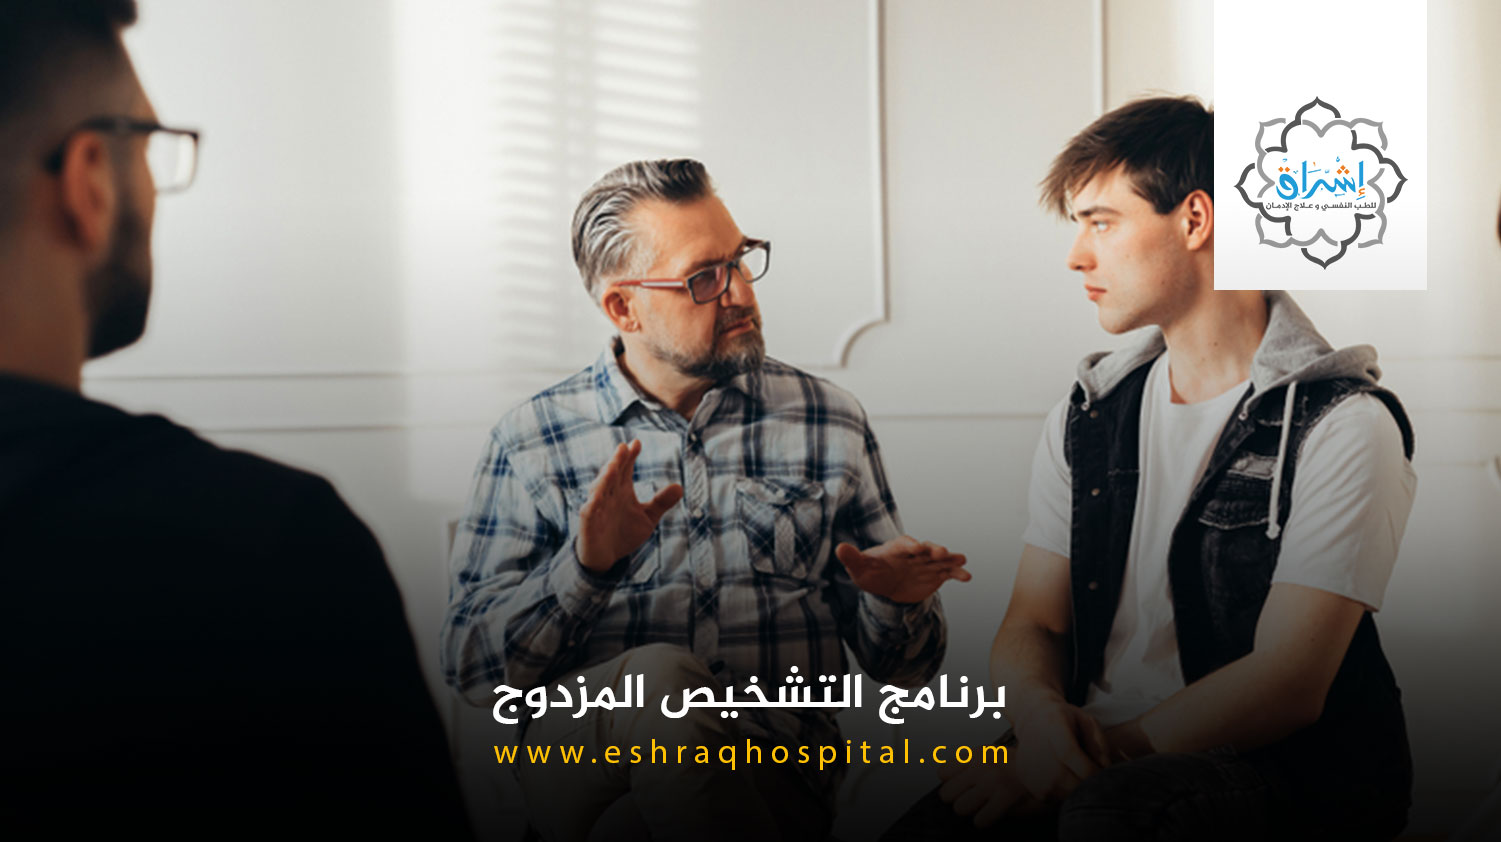 https://eshraqhospital.com/treatment-programs/برنامج-التشخيص-المزدوج/